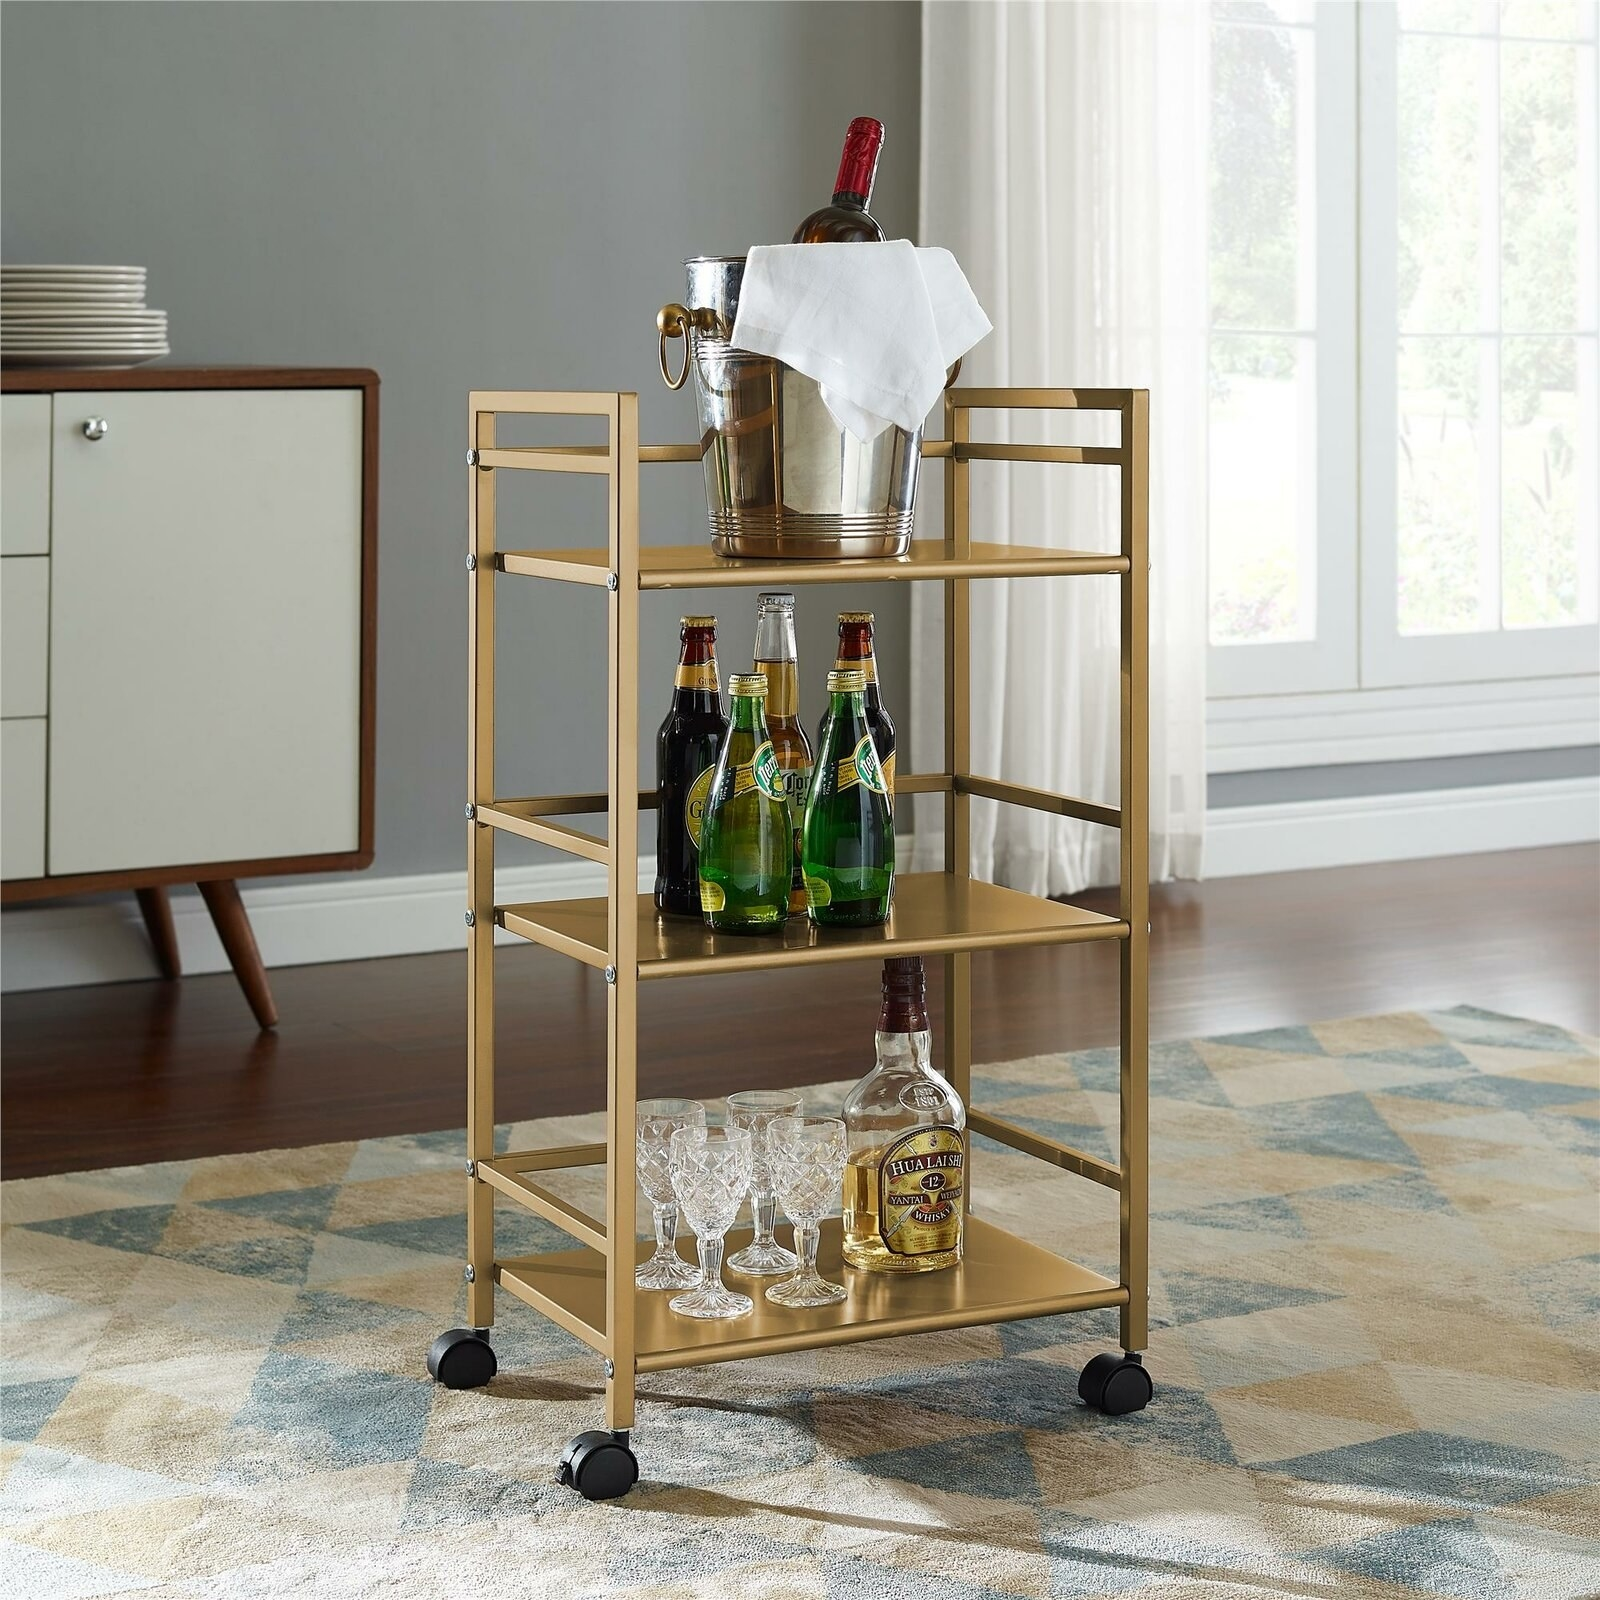 the bar cart, which has wheels and three levels of shelving